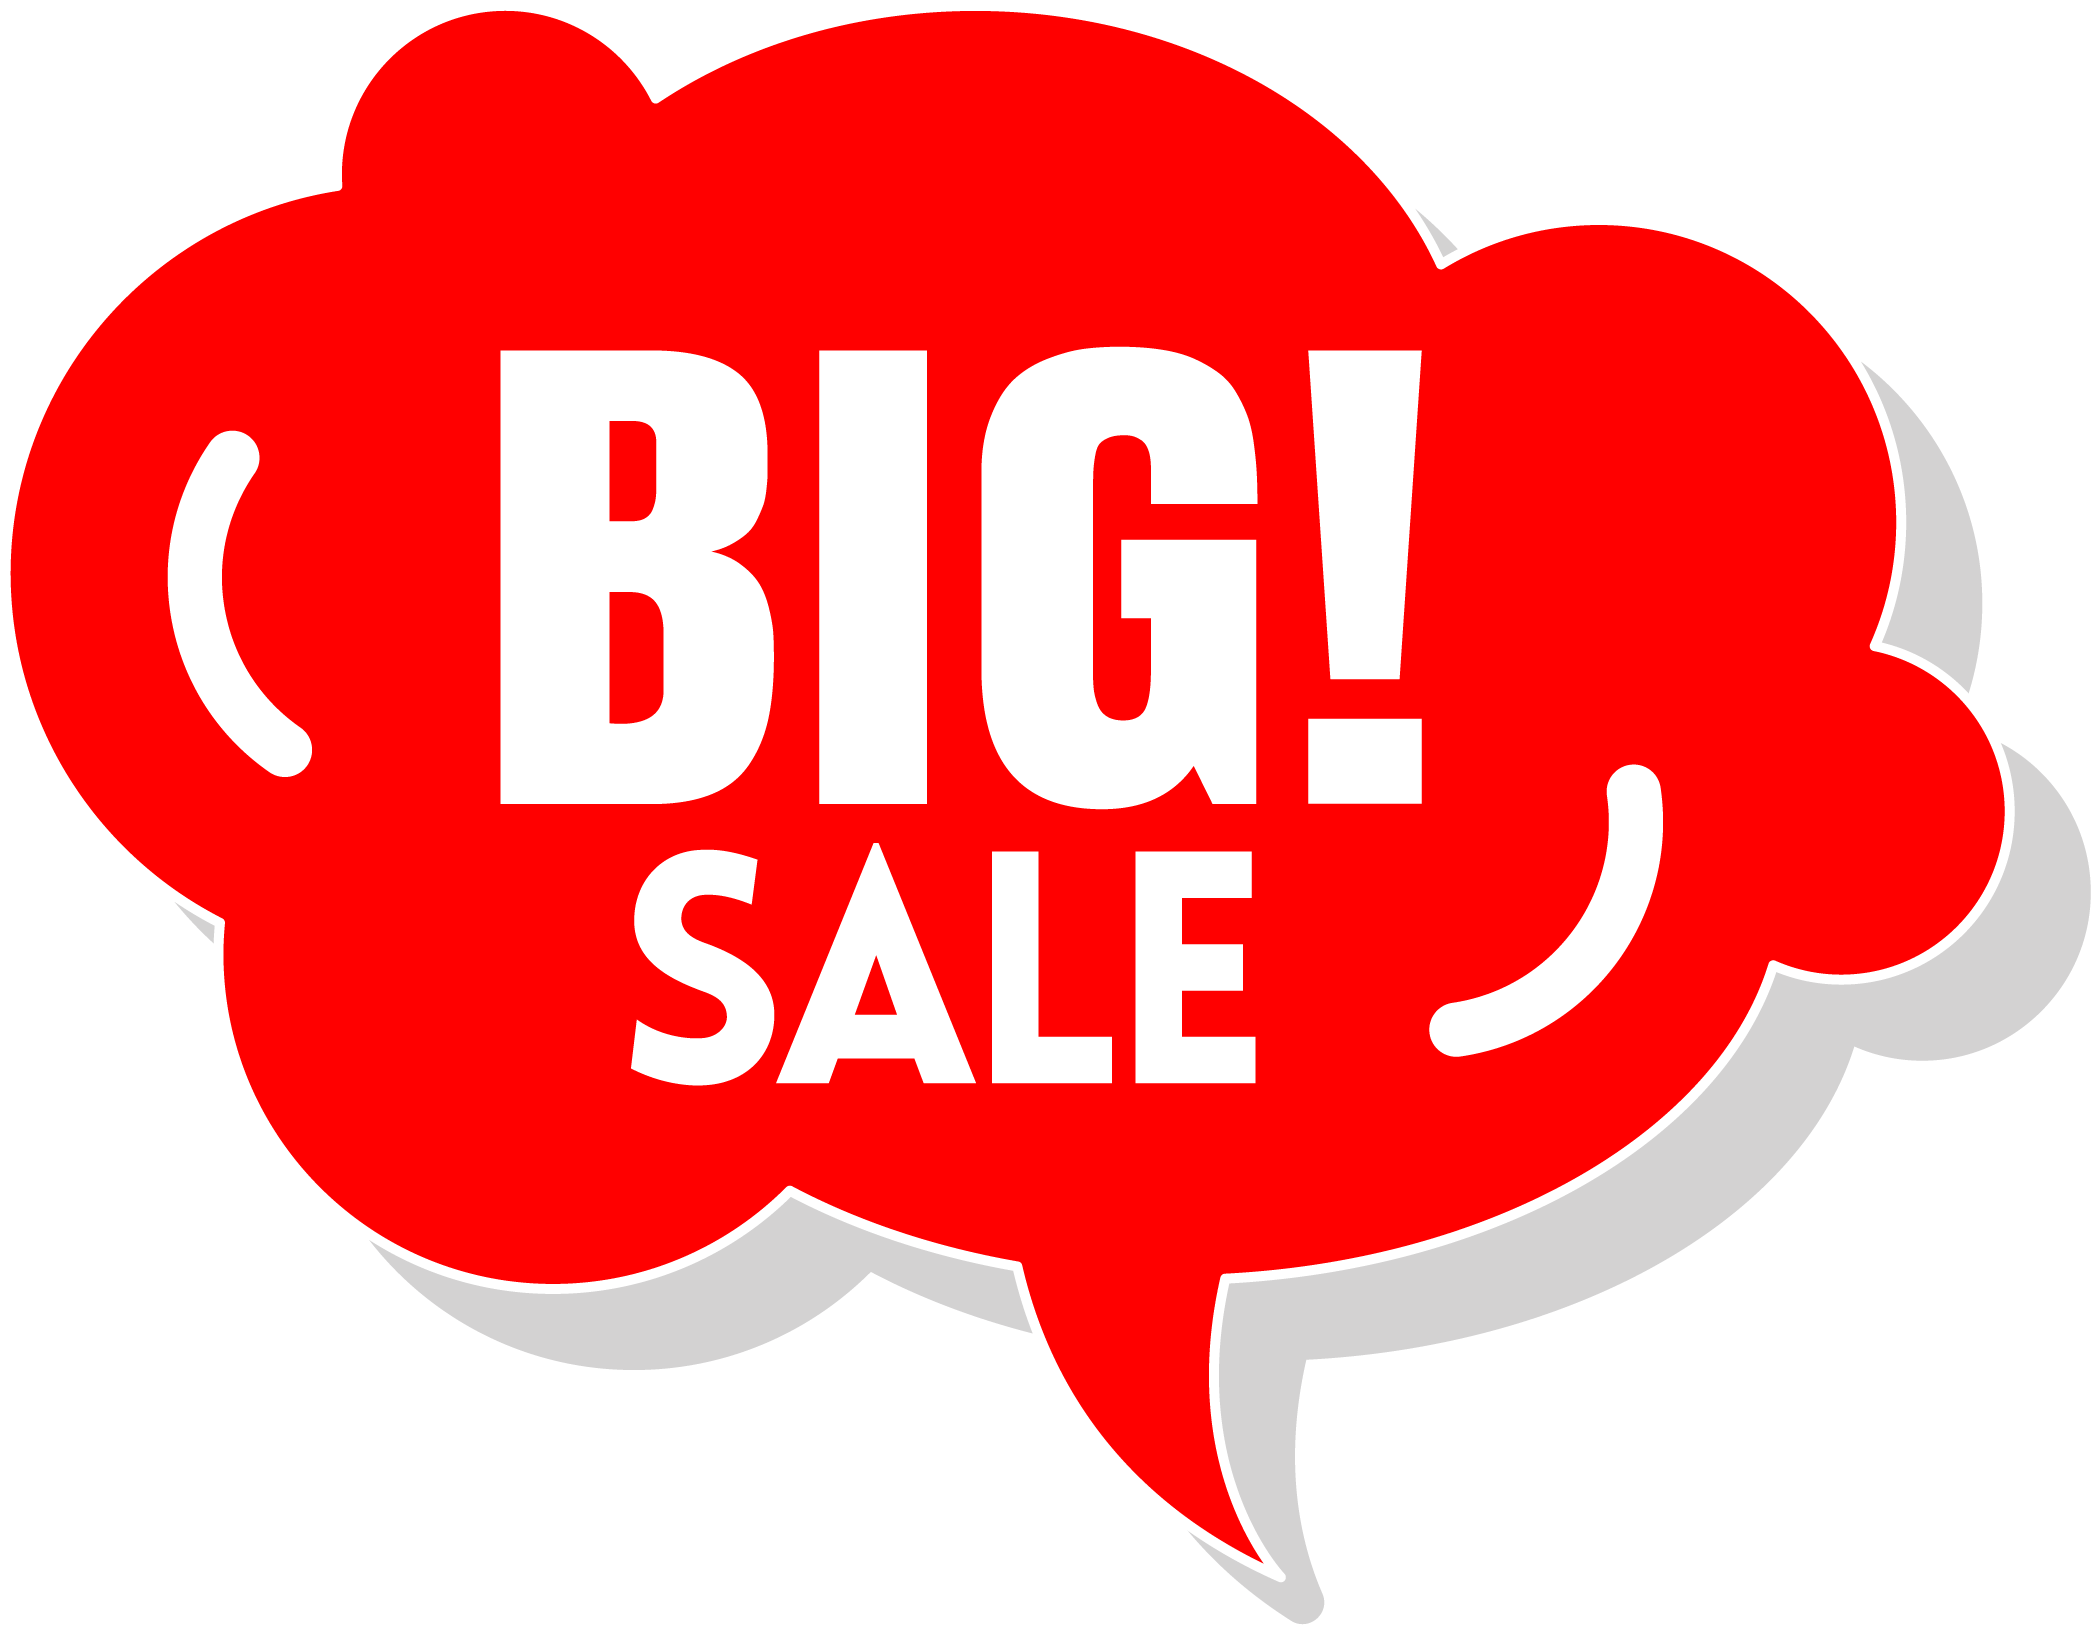 sale-clipart-png-01.png